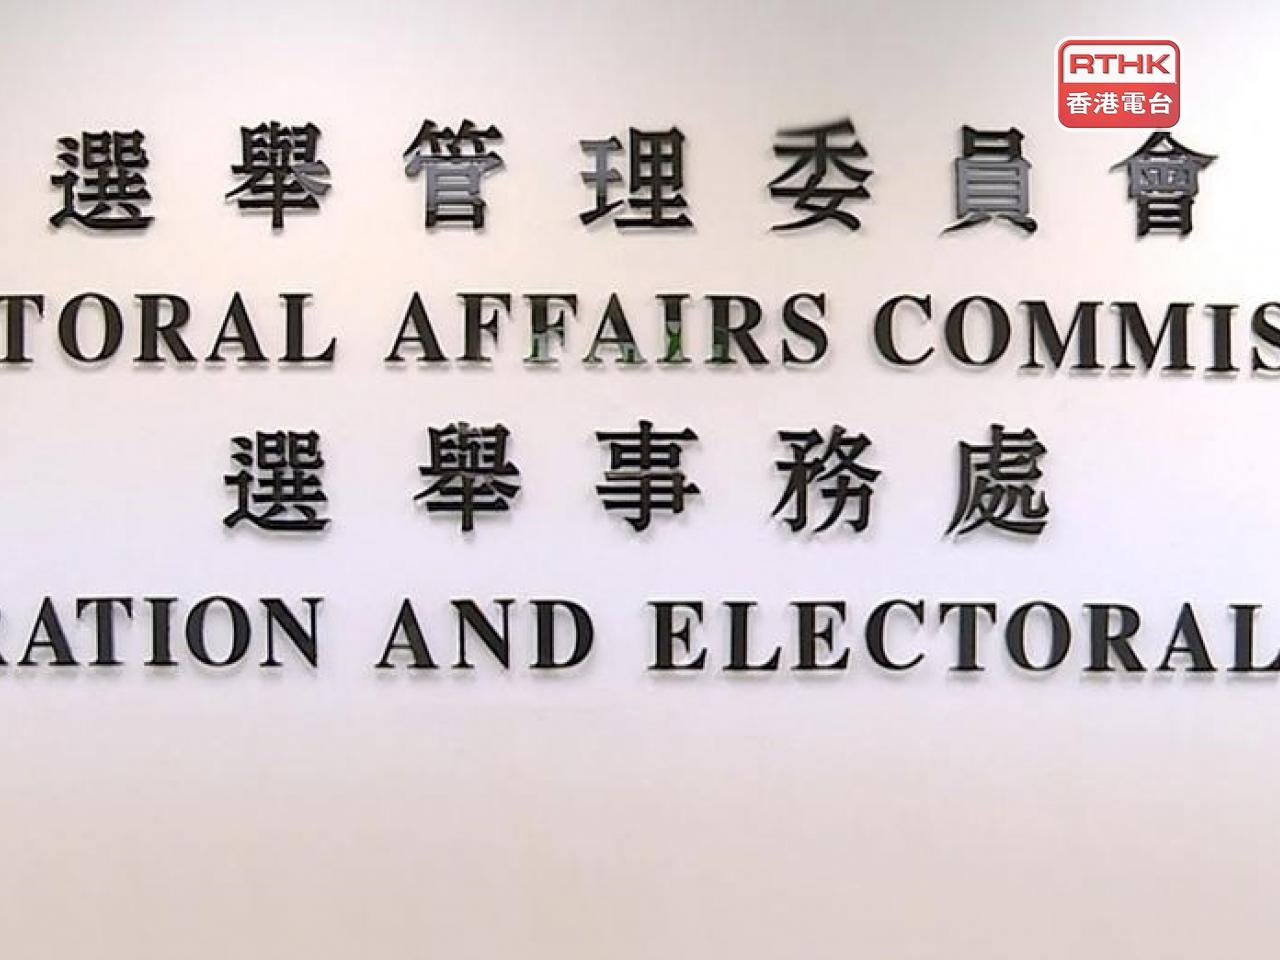 The Registration and Electoral Office says it received a total of 1,056 nomination forms. File photo: RTHK